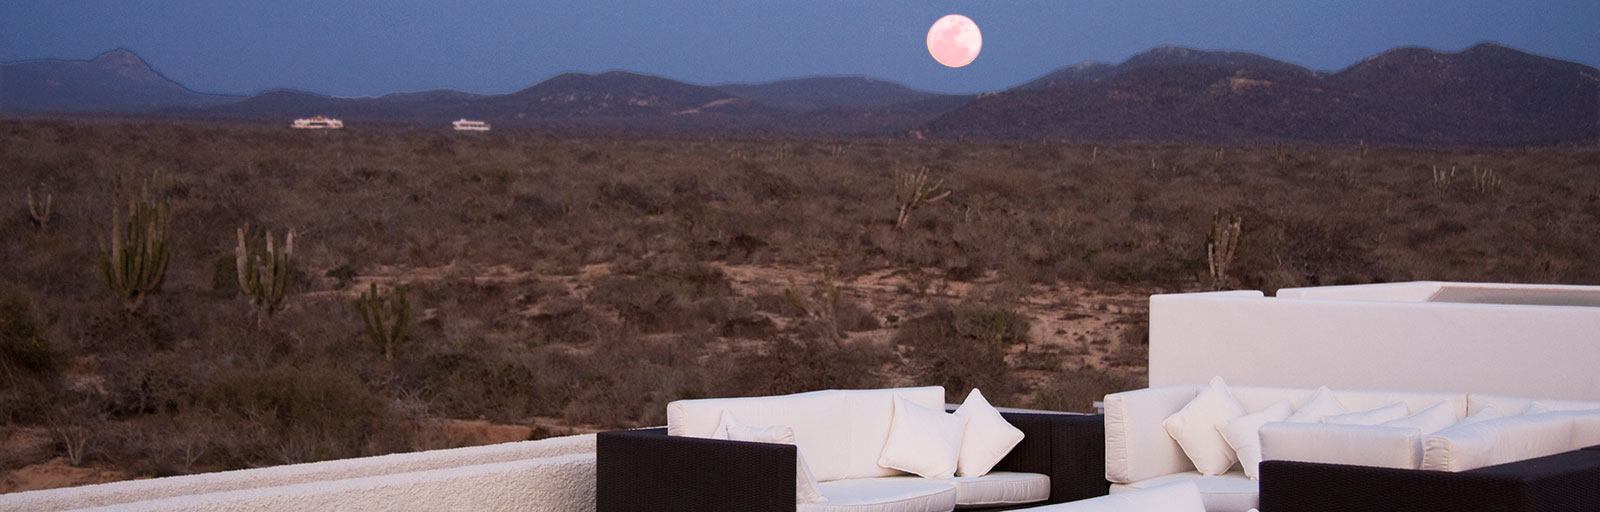 Gardens at Yoga Retreat Mexico: Moonrise on the Roof Deck